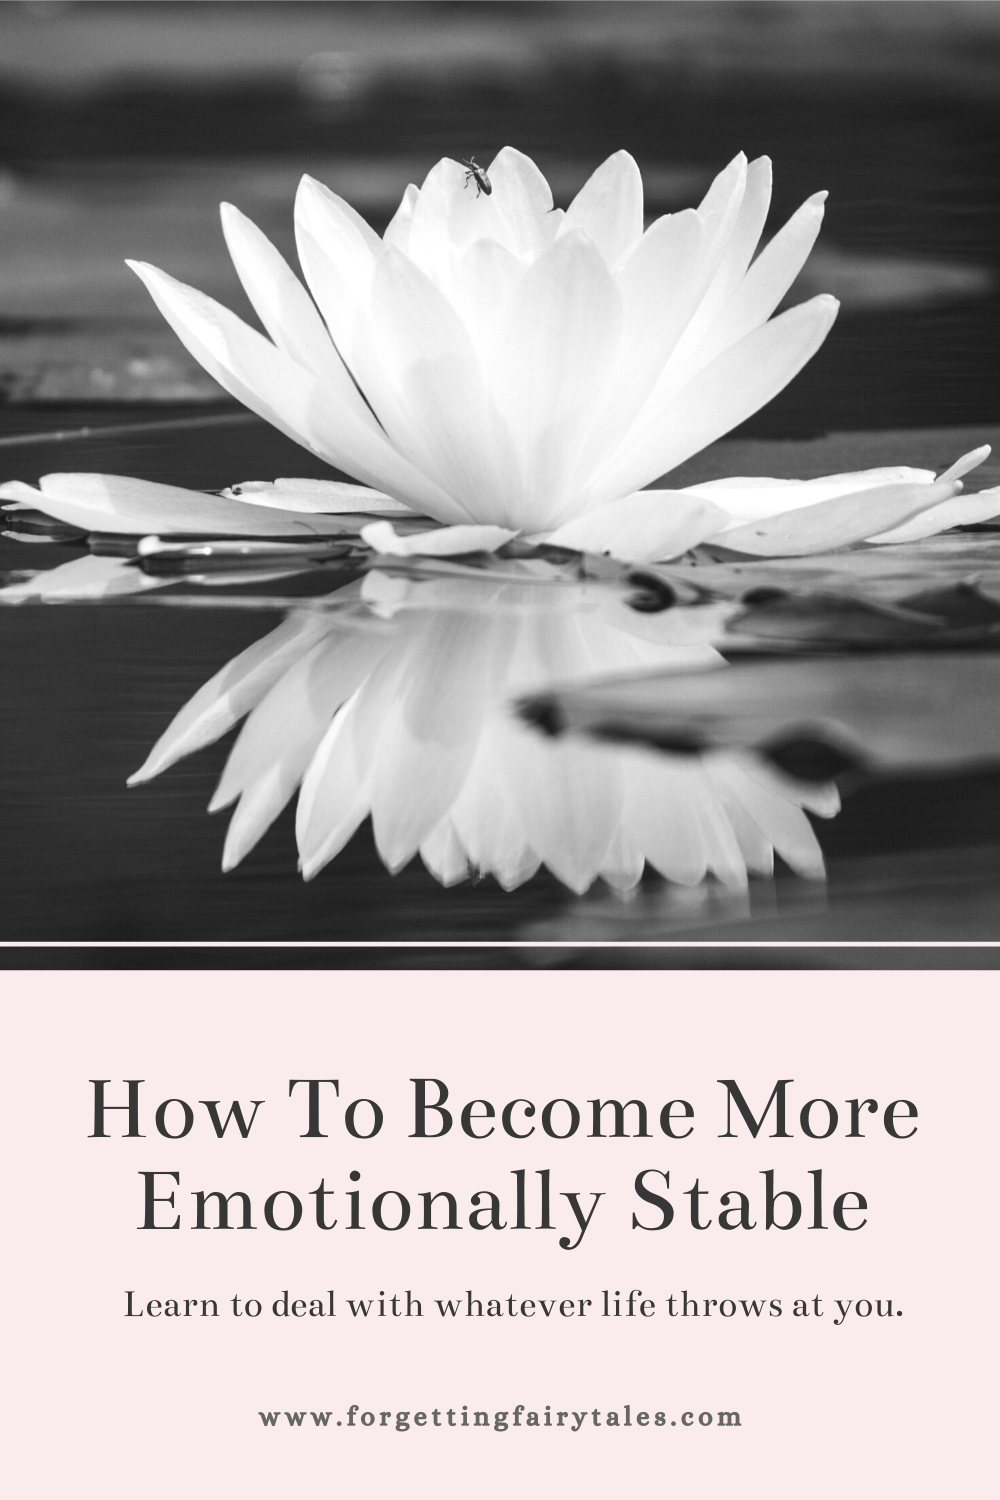 How To Become Emotionally Stable